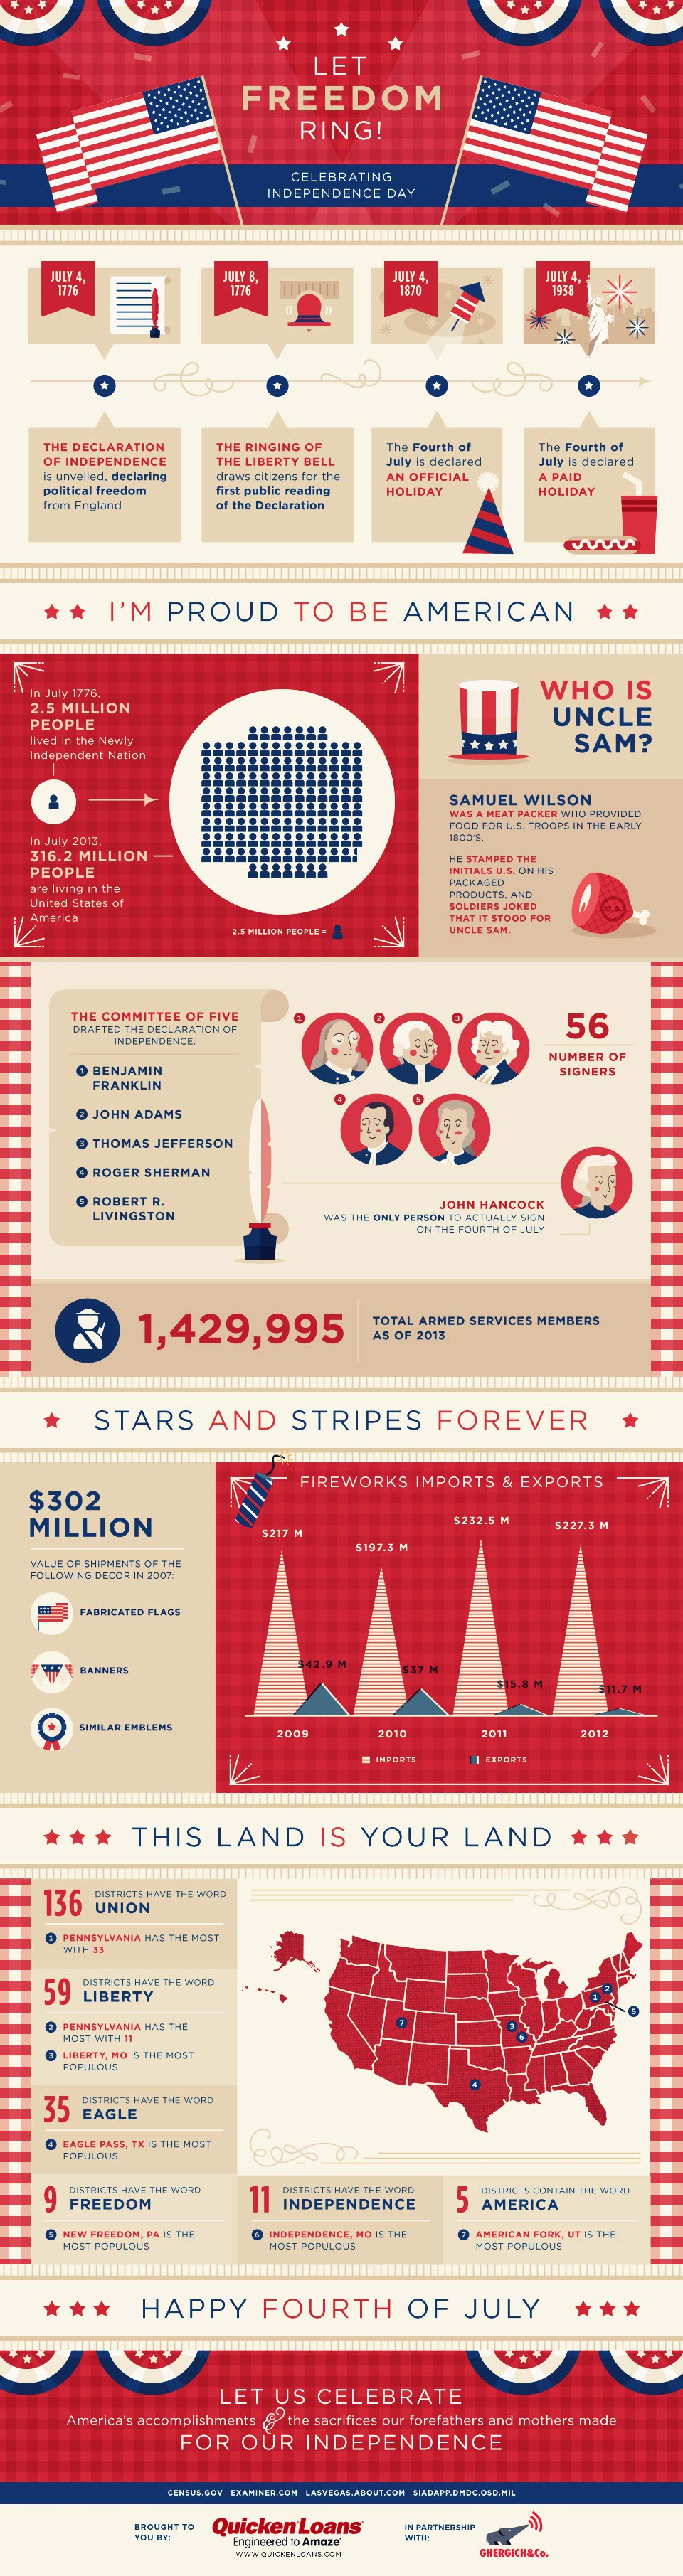 July 4th Tribute-infographic